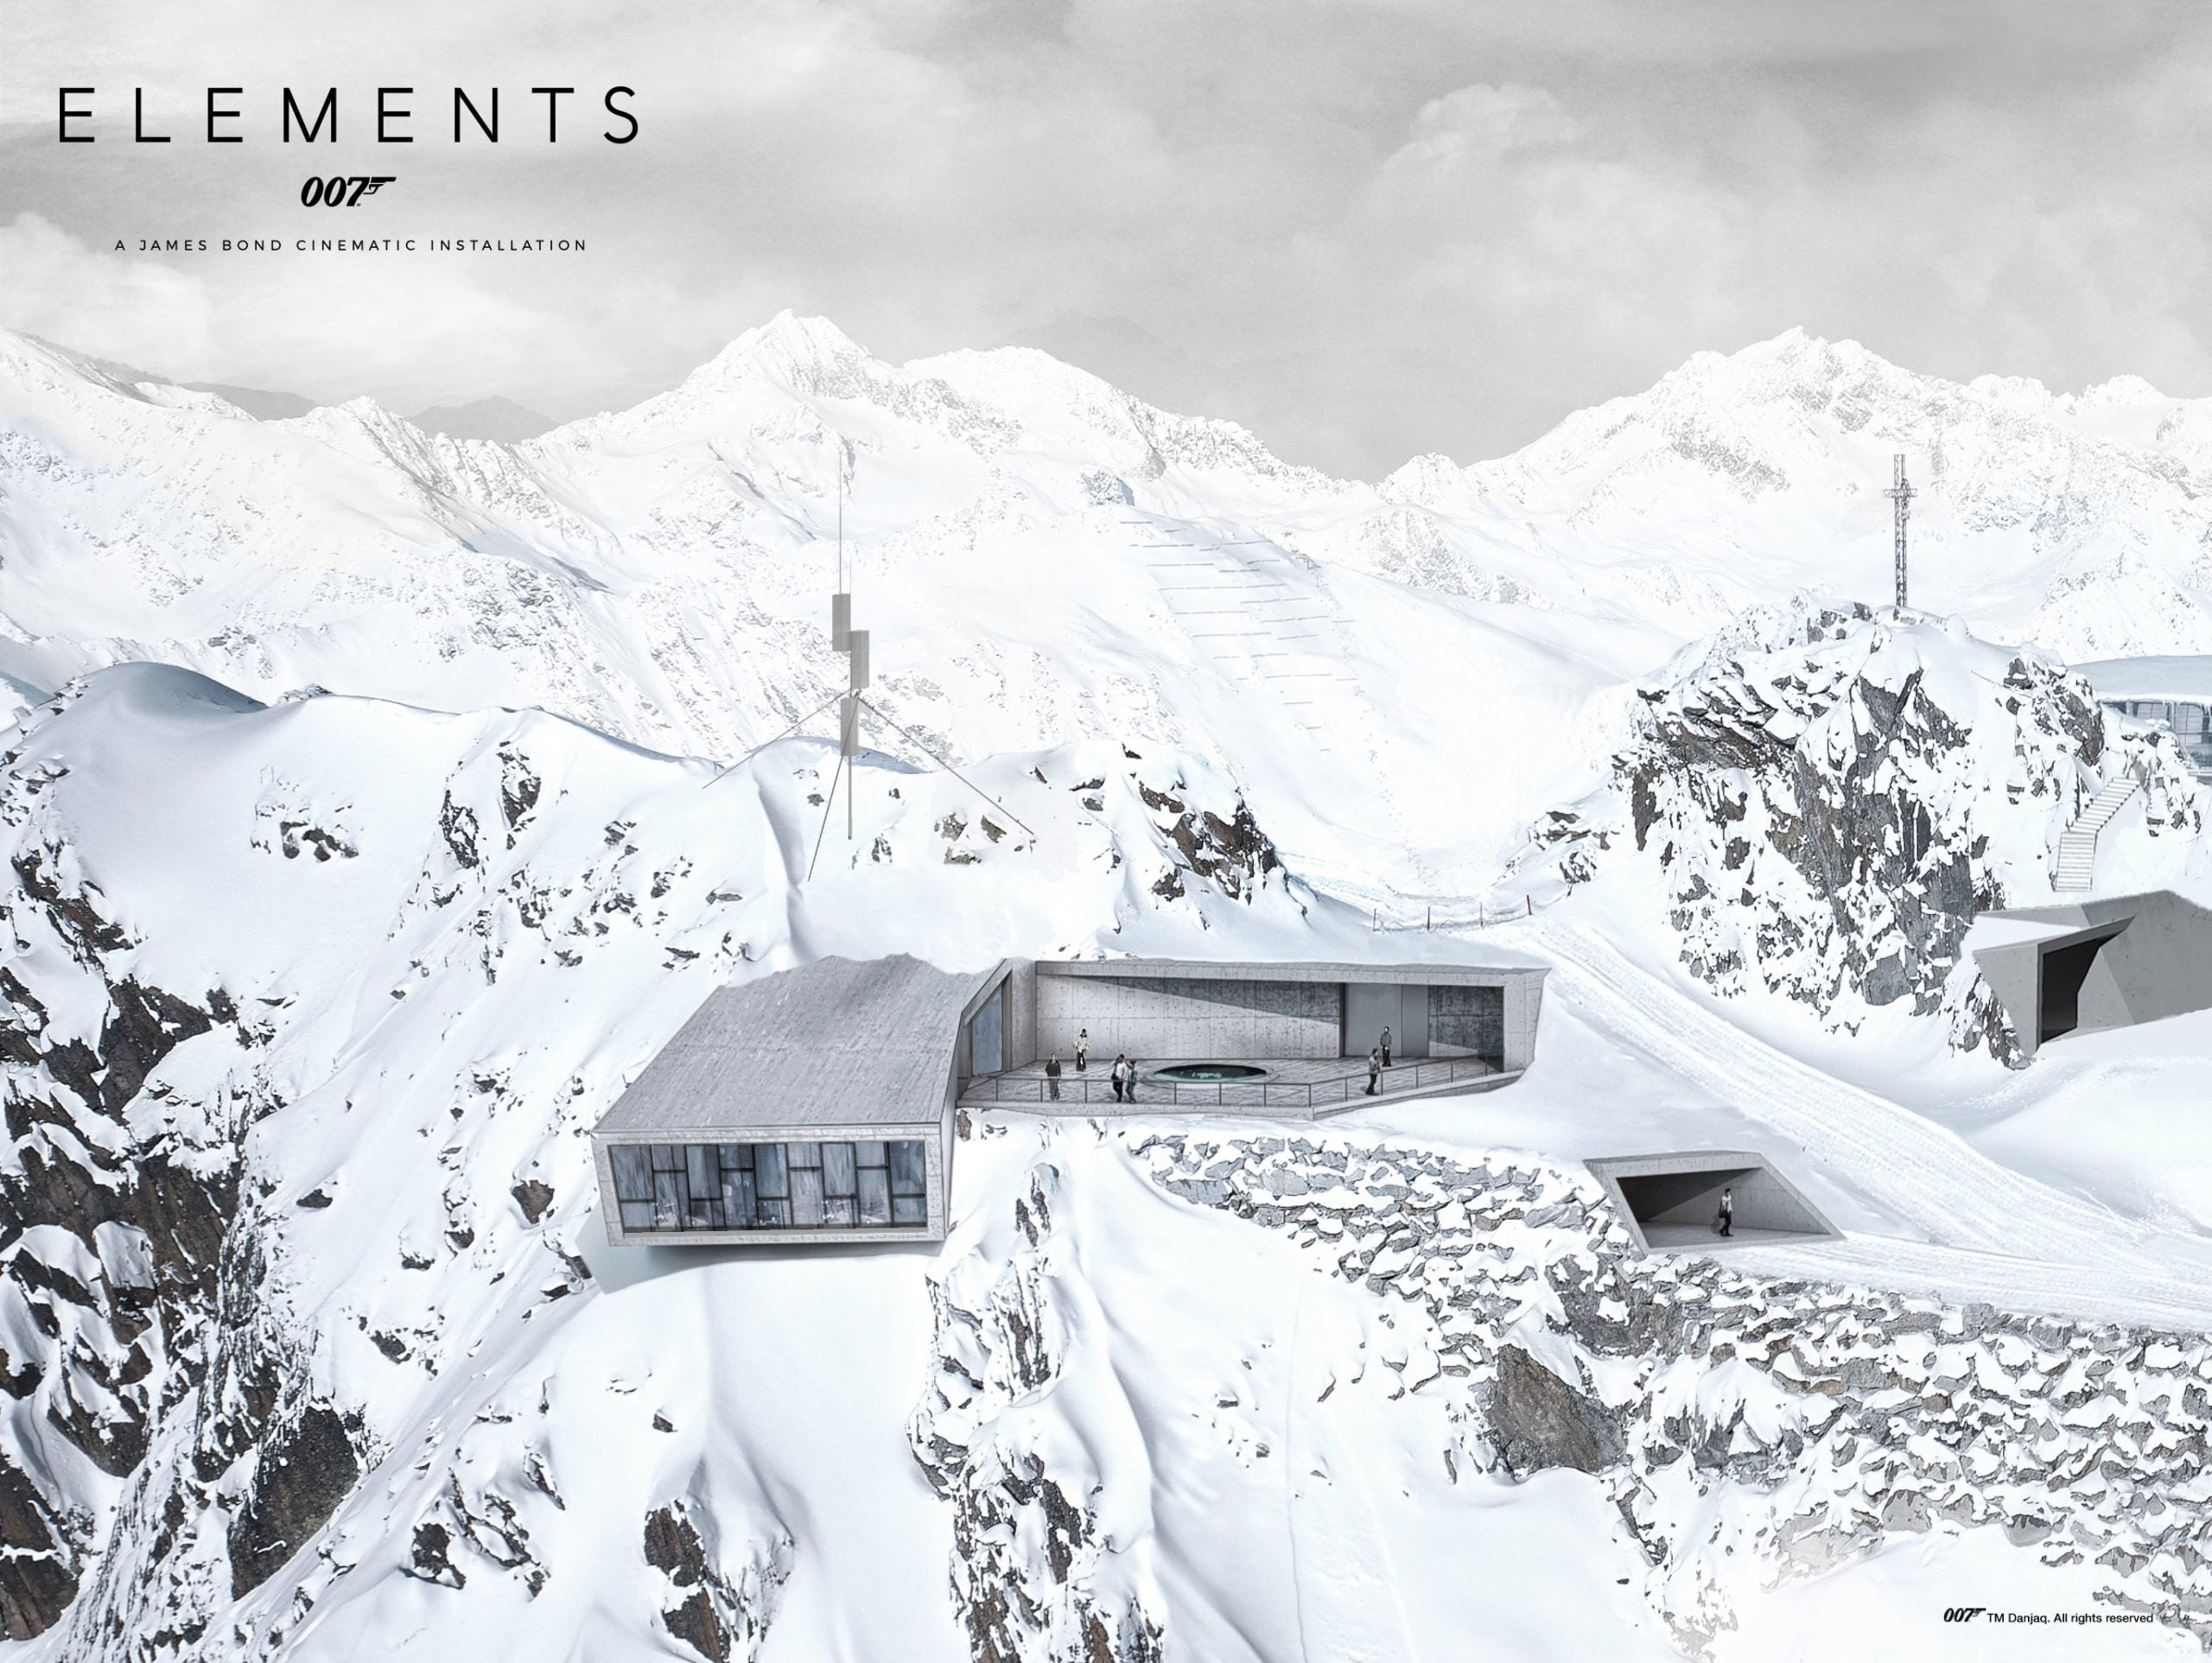 007 Elements: A James Bond Cinematic Installation